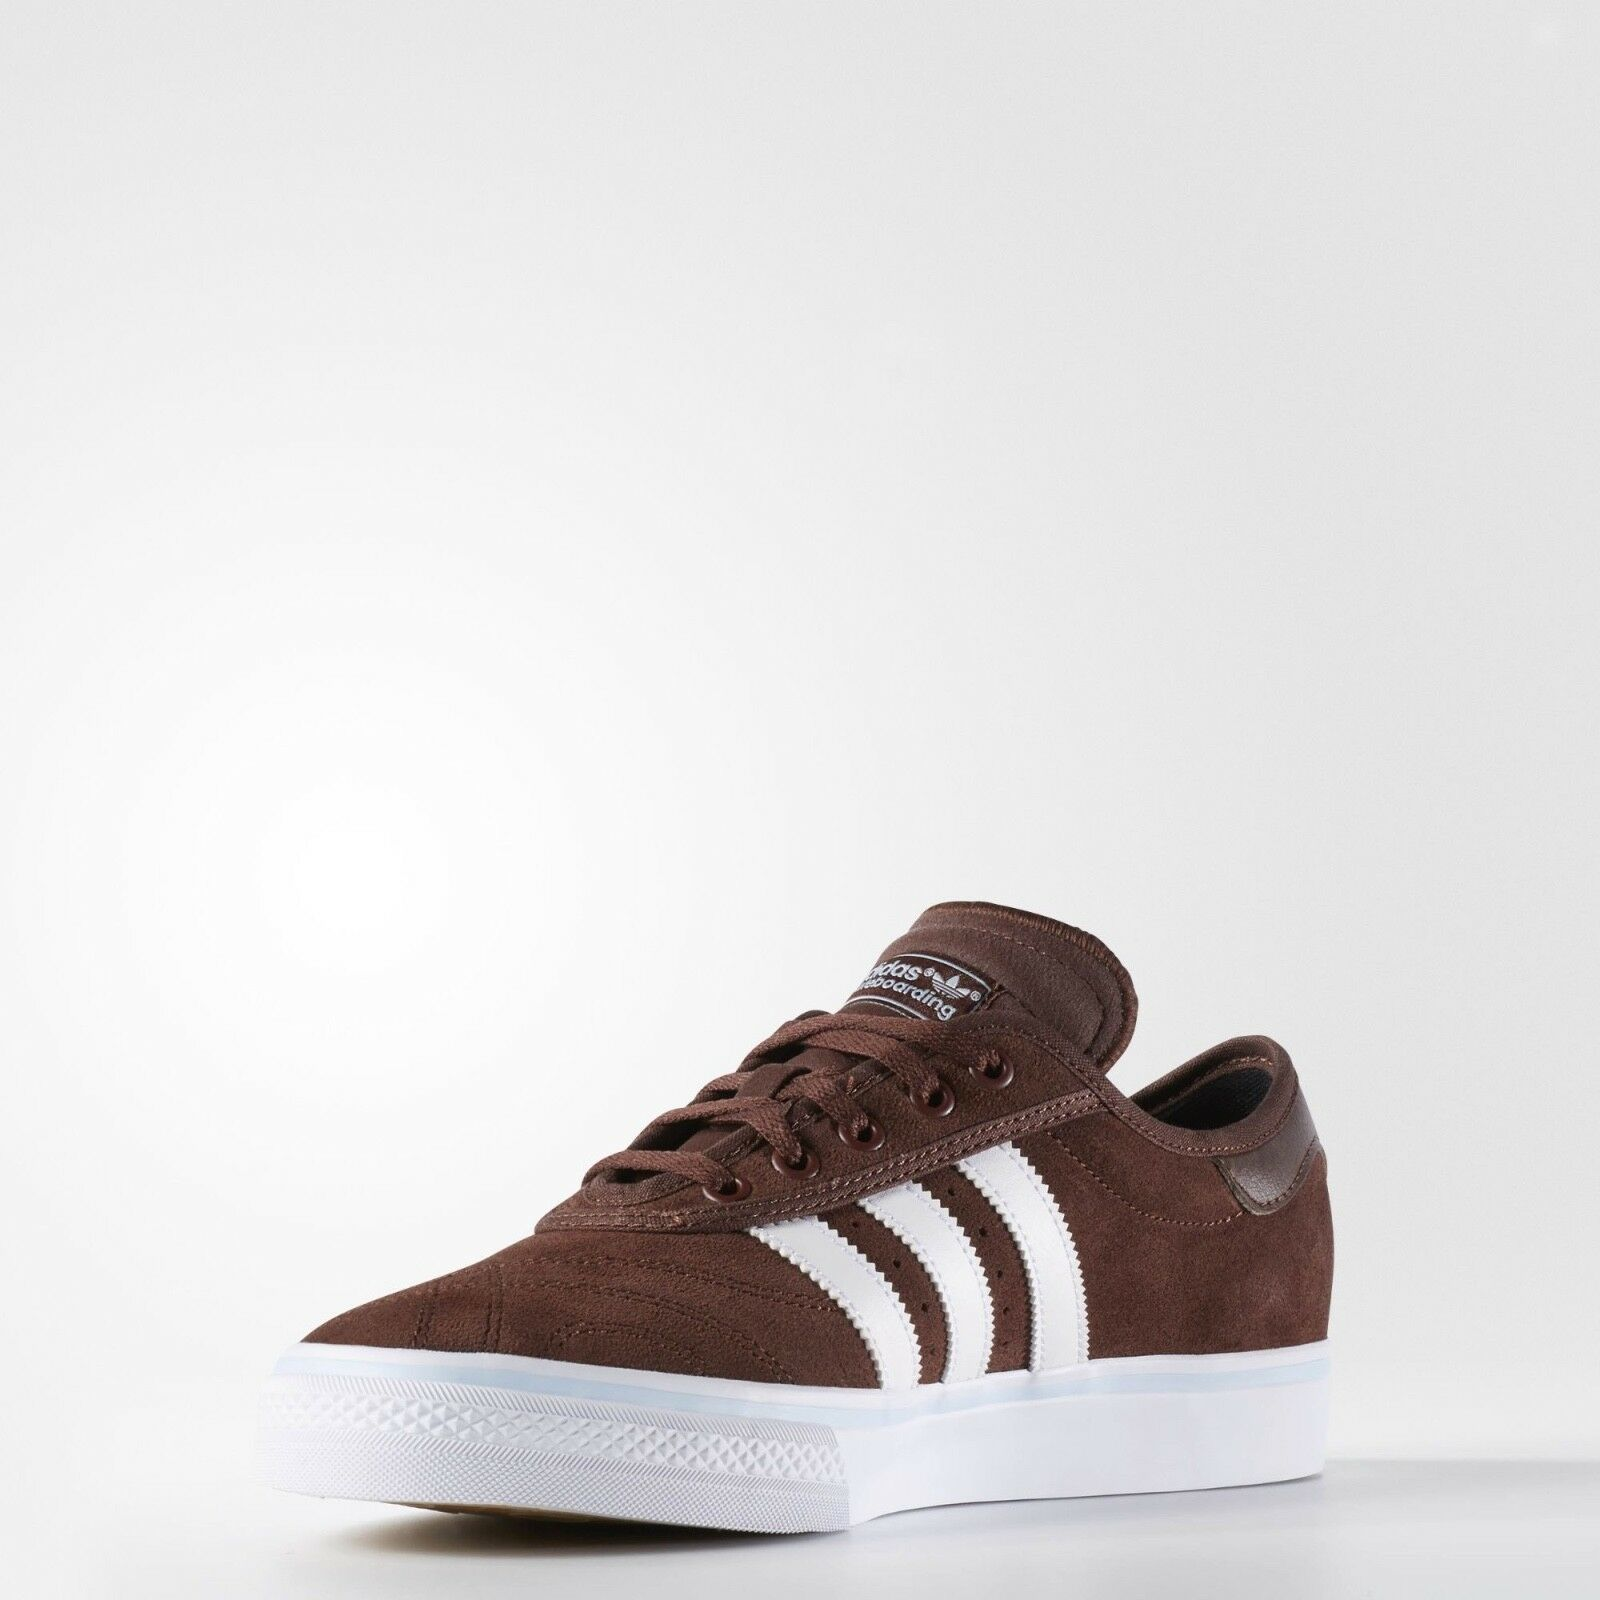 Adidas Skateboarding Adi Ease Premiere ADV Mens Trainers Brown *BRAND NEW* Brand discount